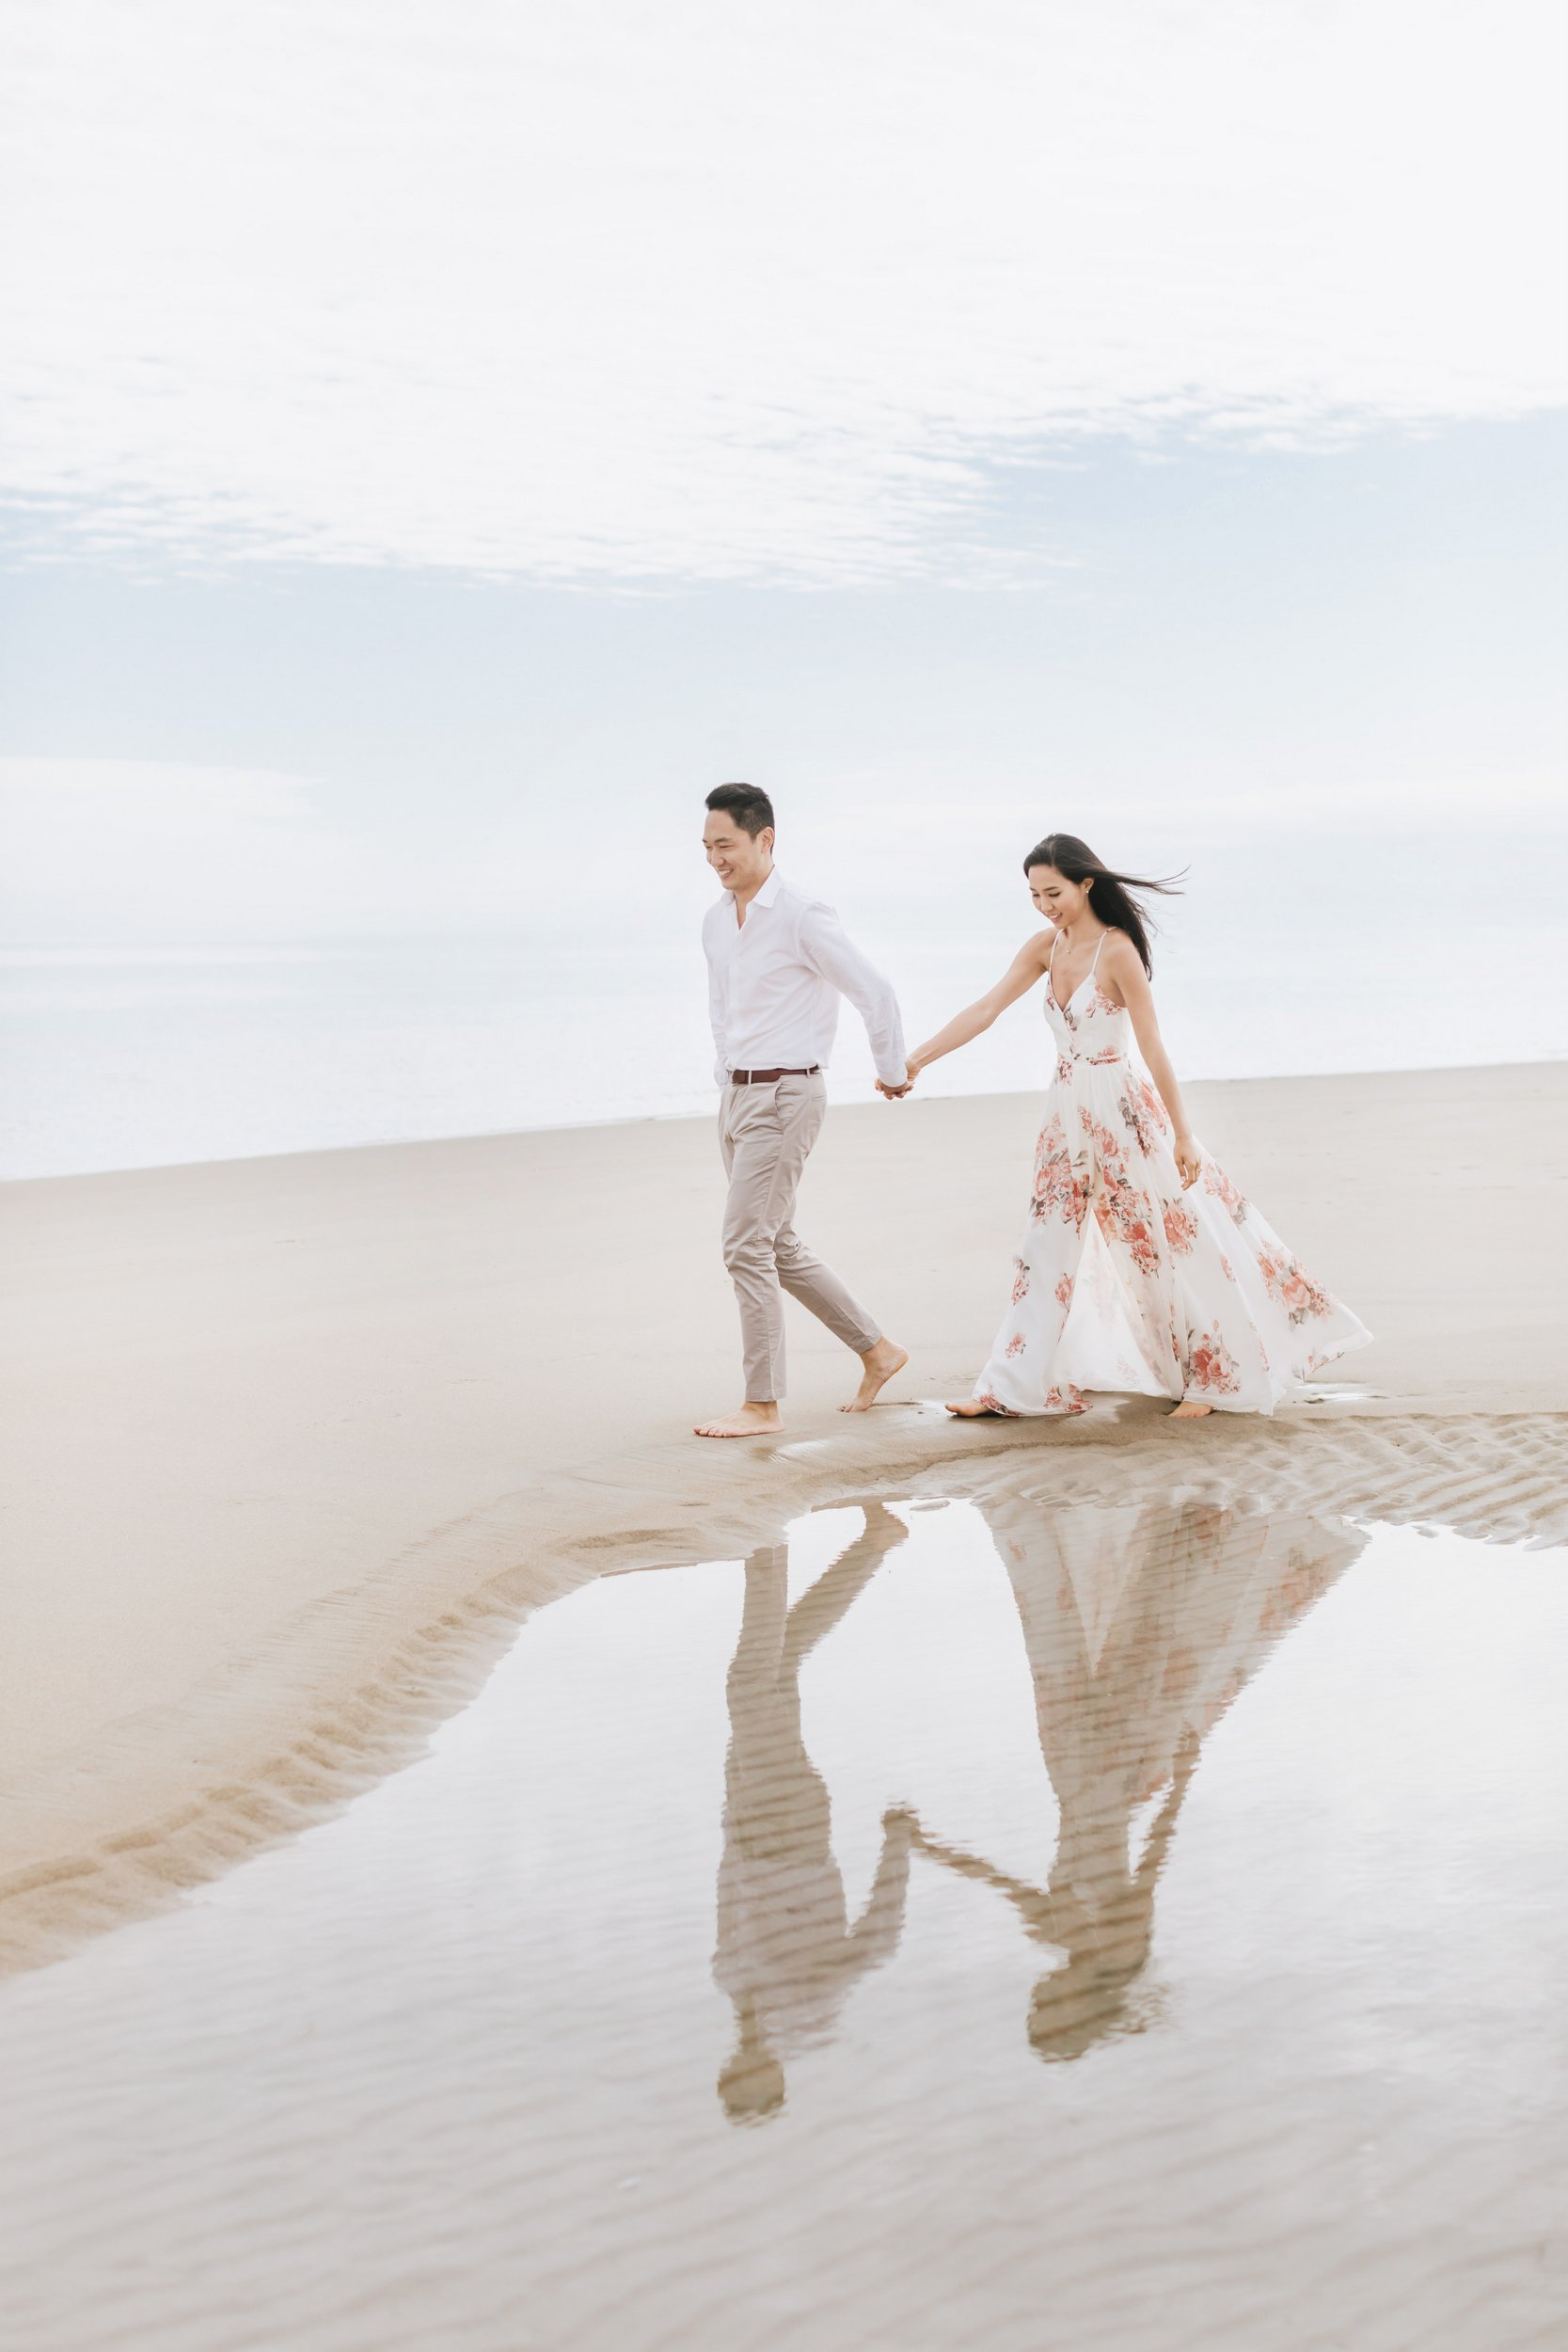 Crane-Beach-Engagement-Wedding-Lena-Mirisola-7.JPG